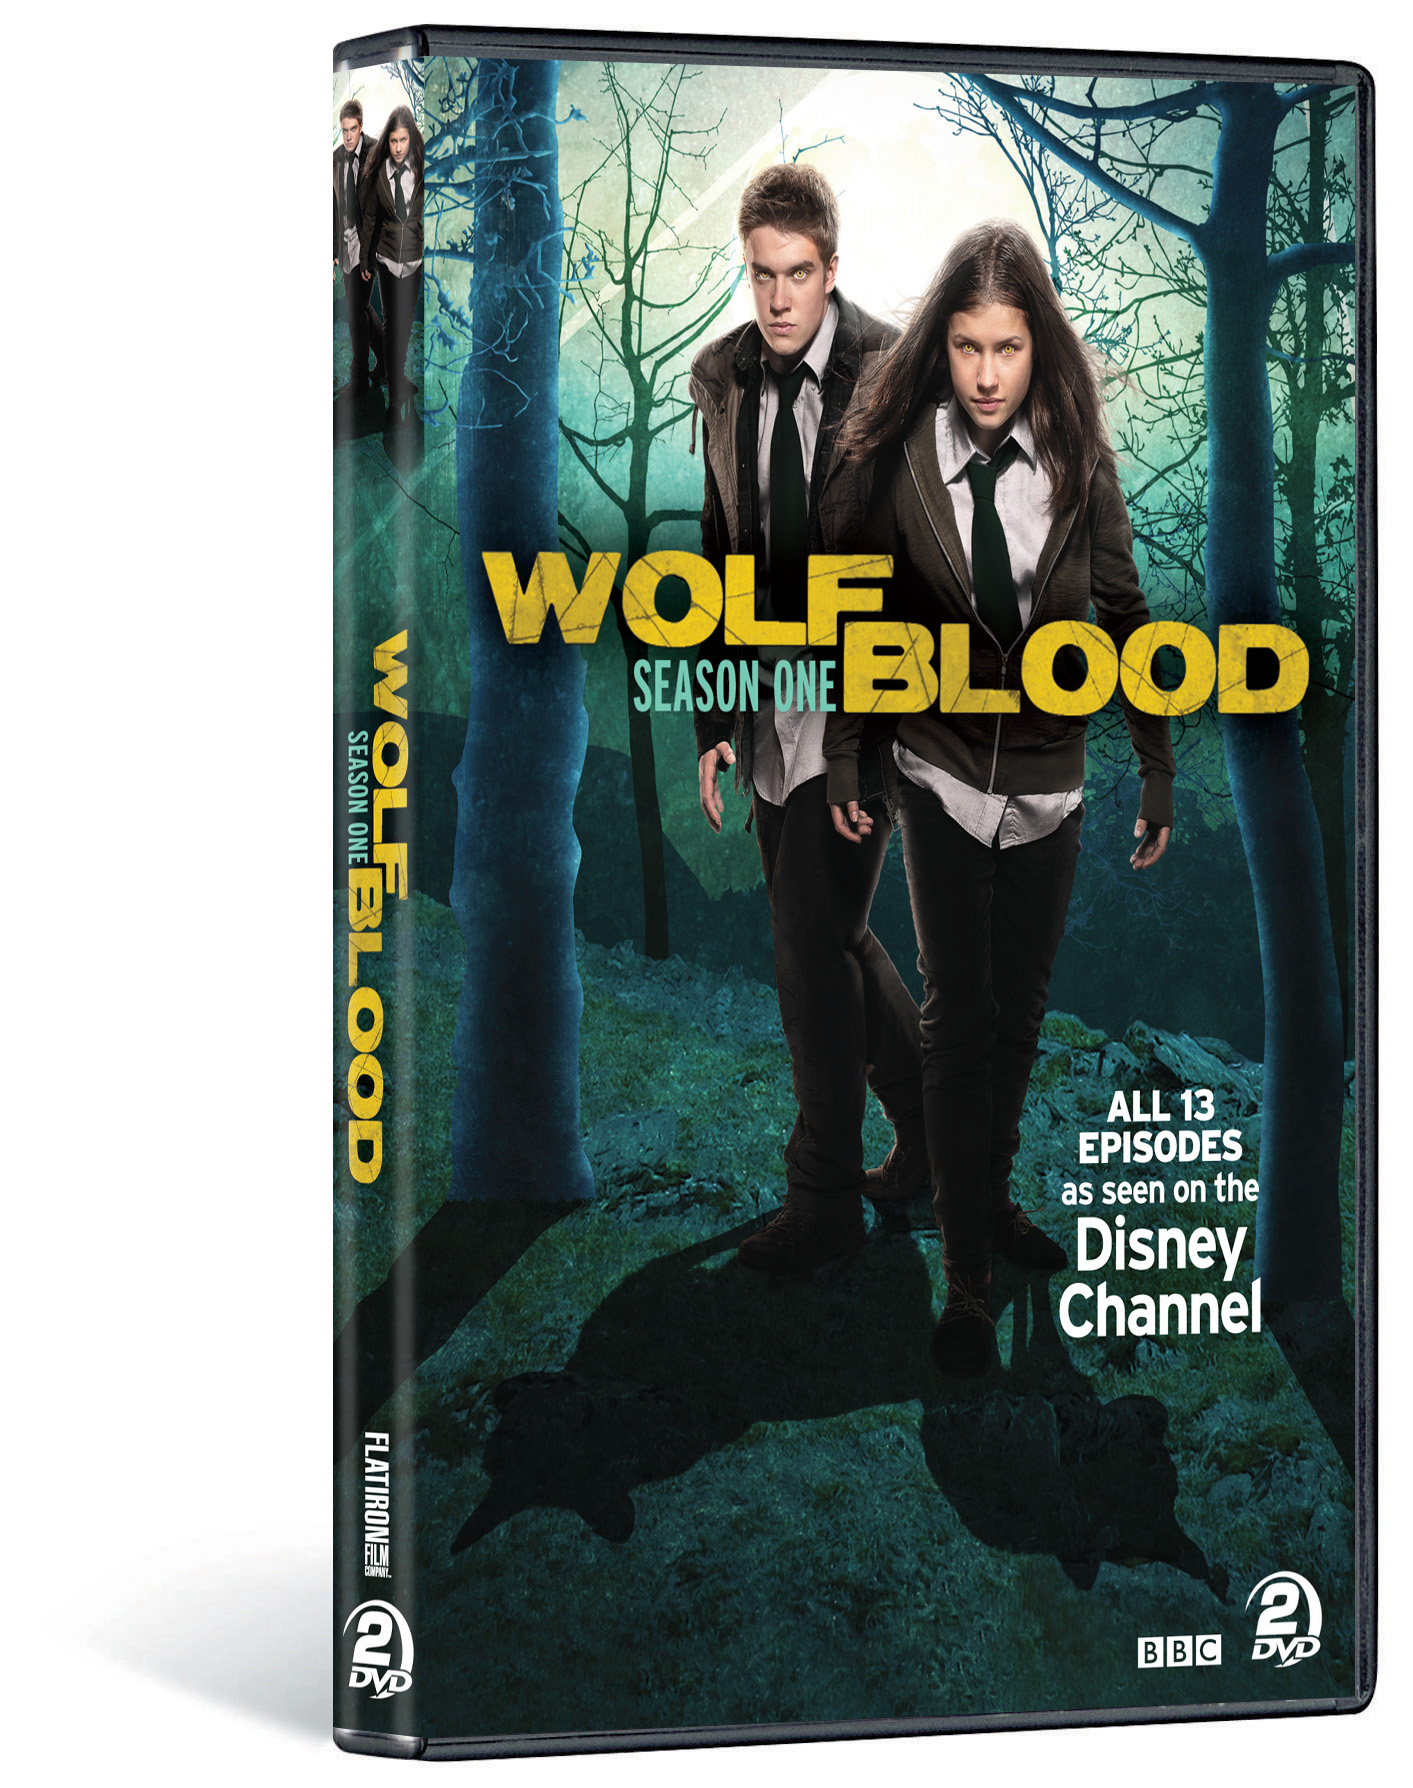 wolfblood season 1